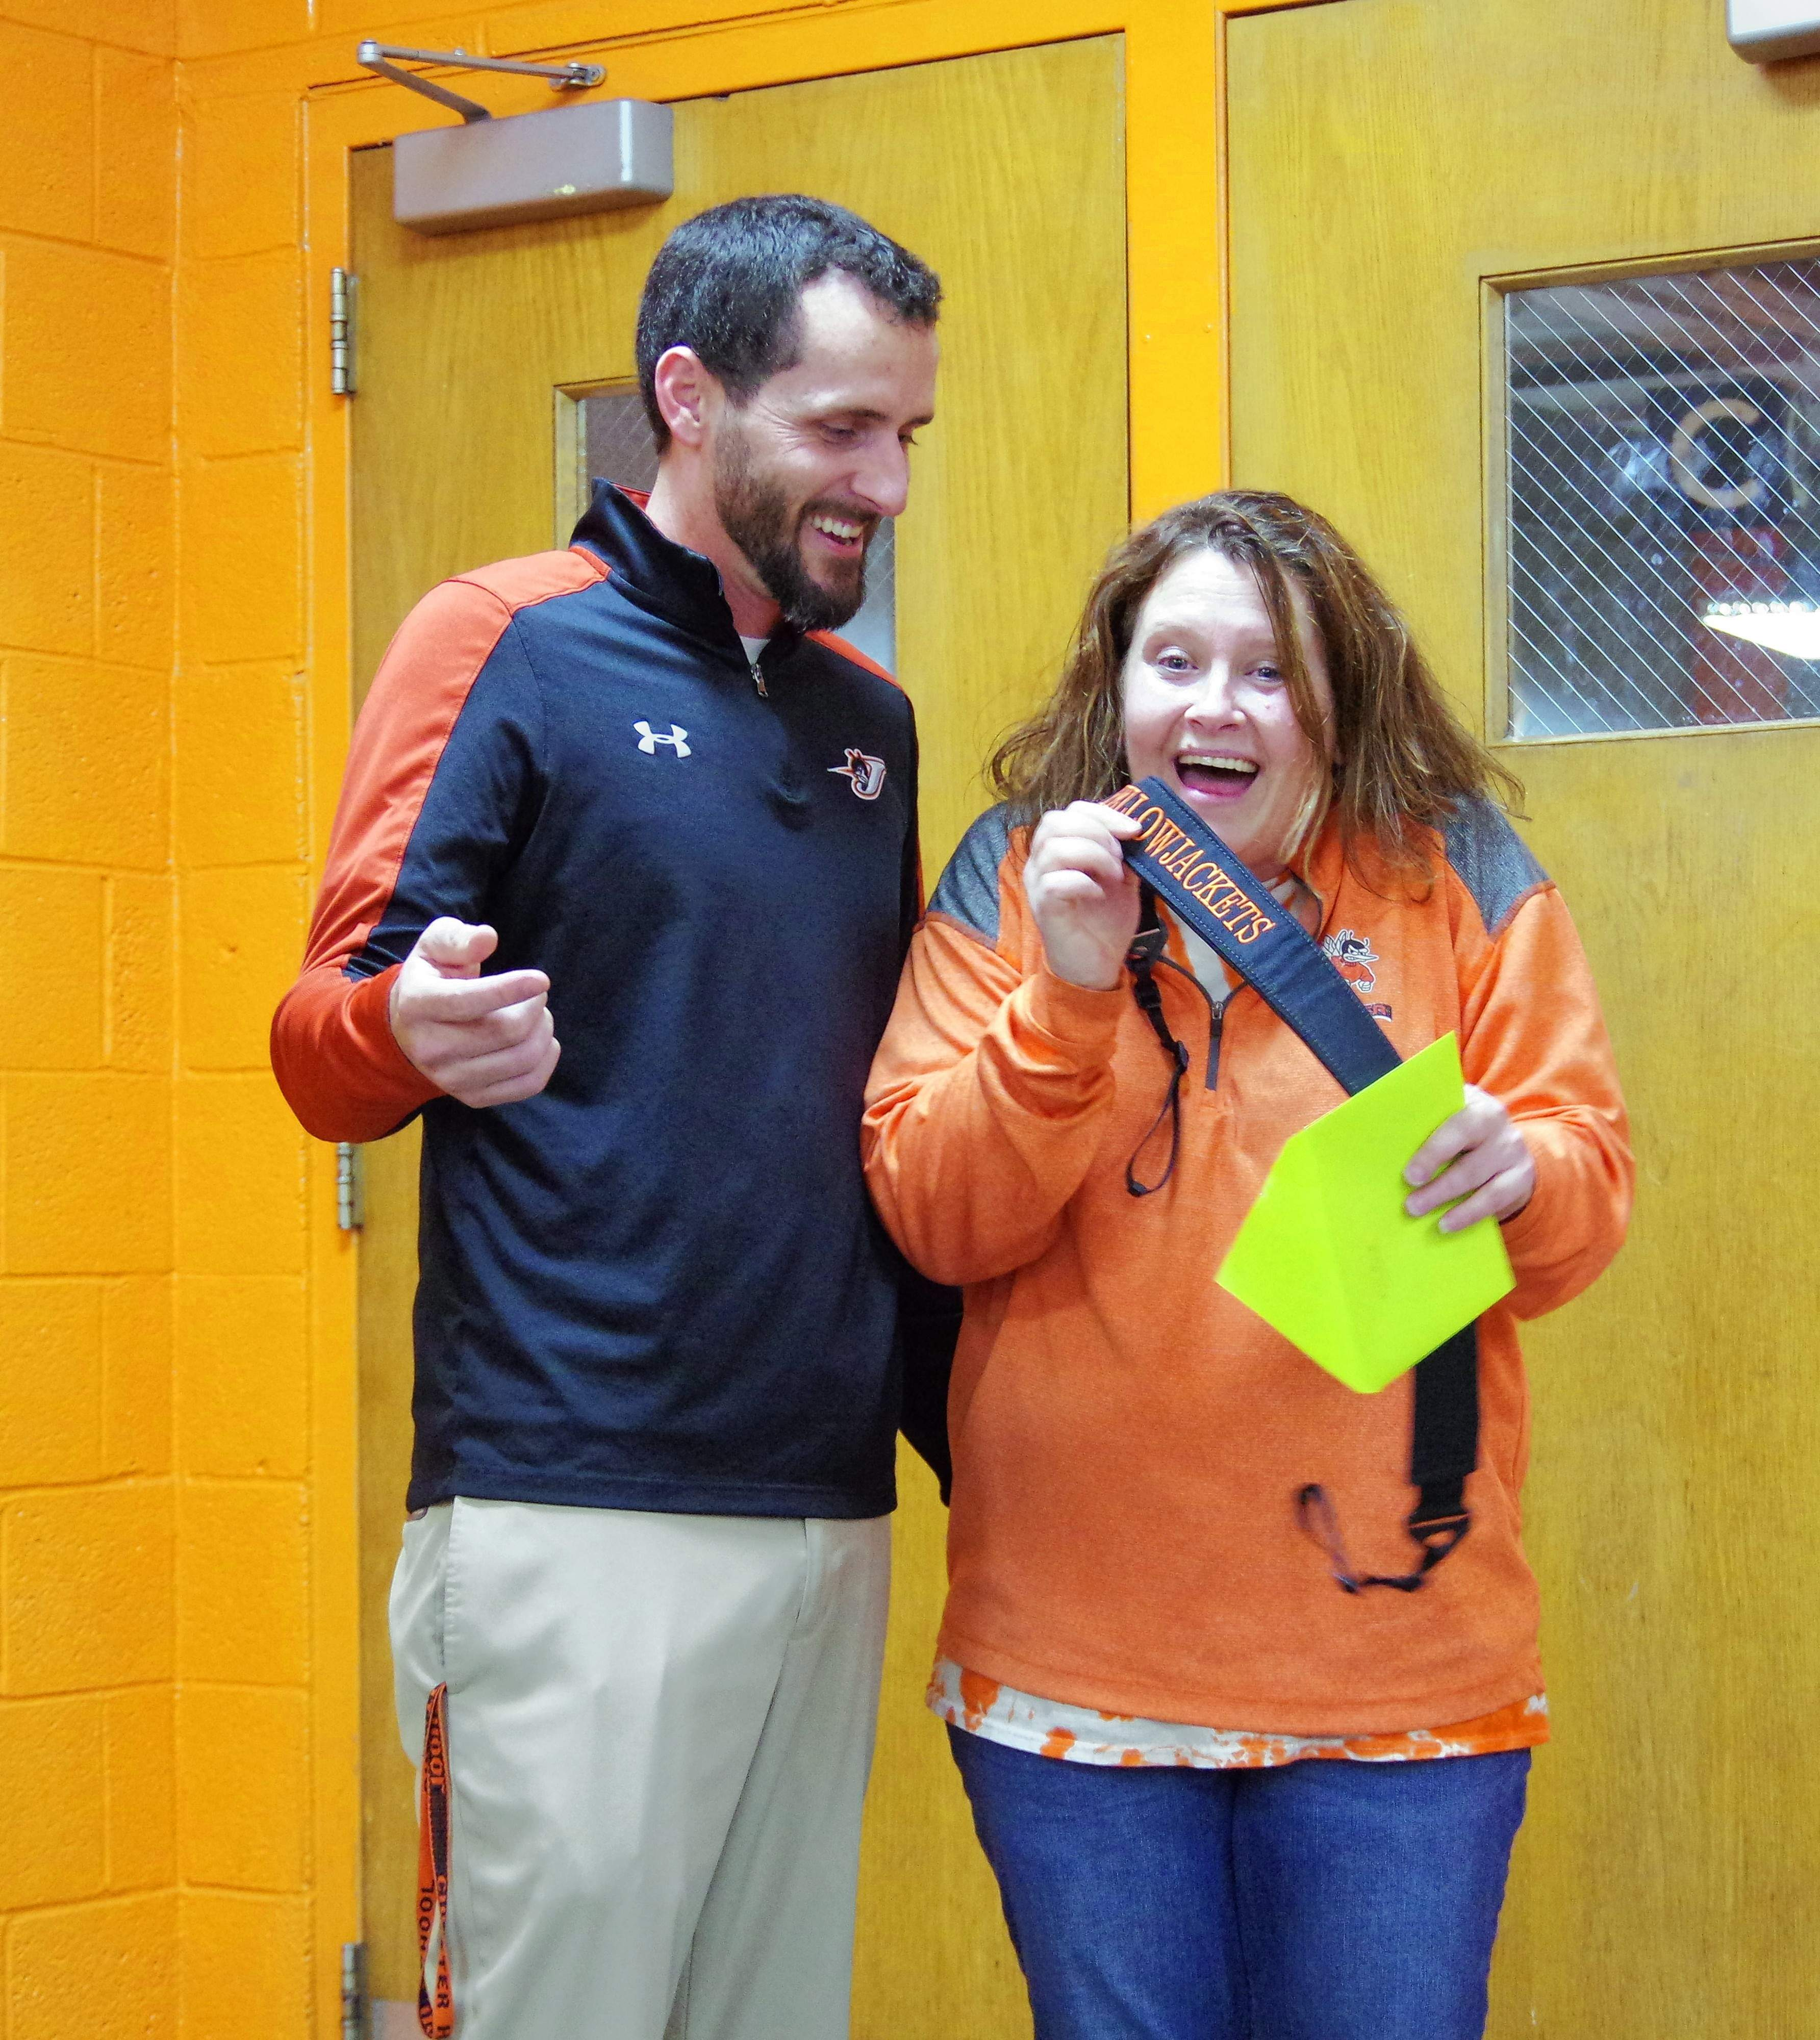 Misti Price is delighted with the camera strap given to her by Coach Brad Norman. Price started and maintained the boys basketball web site and Facebook page, and is at every game, camera in hand.